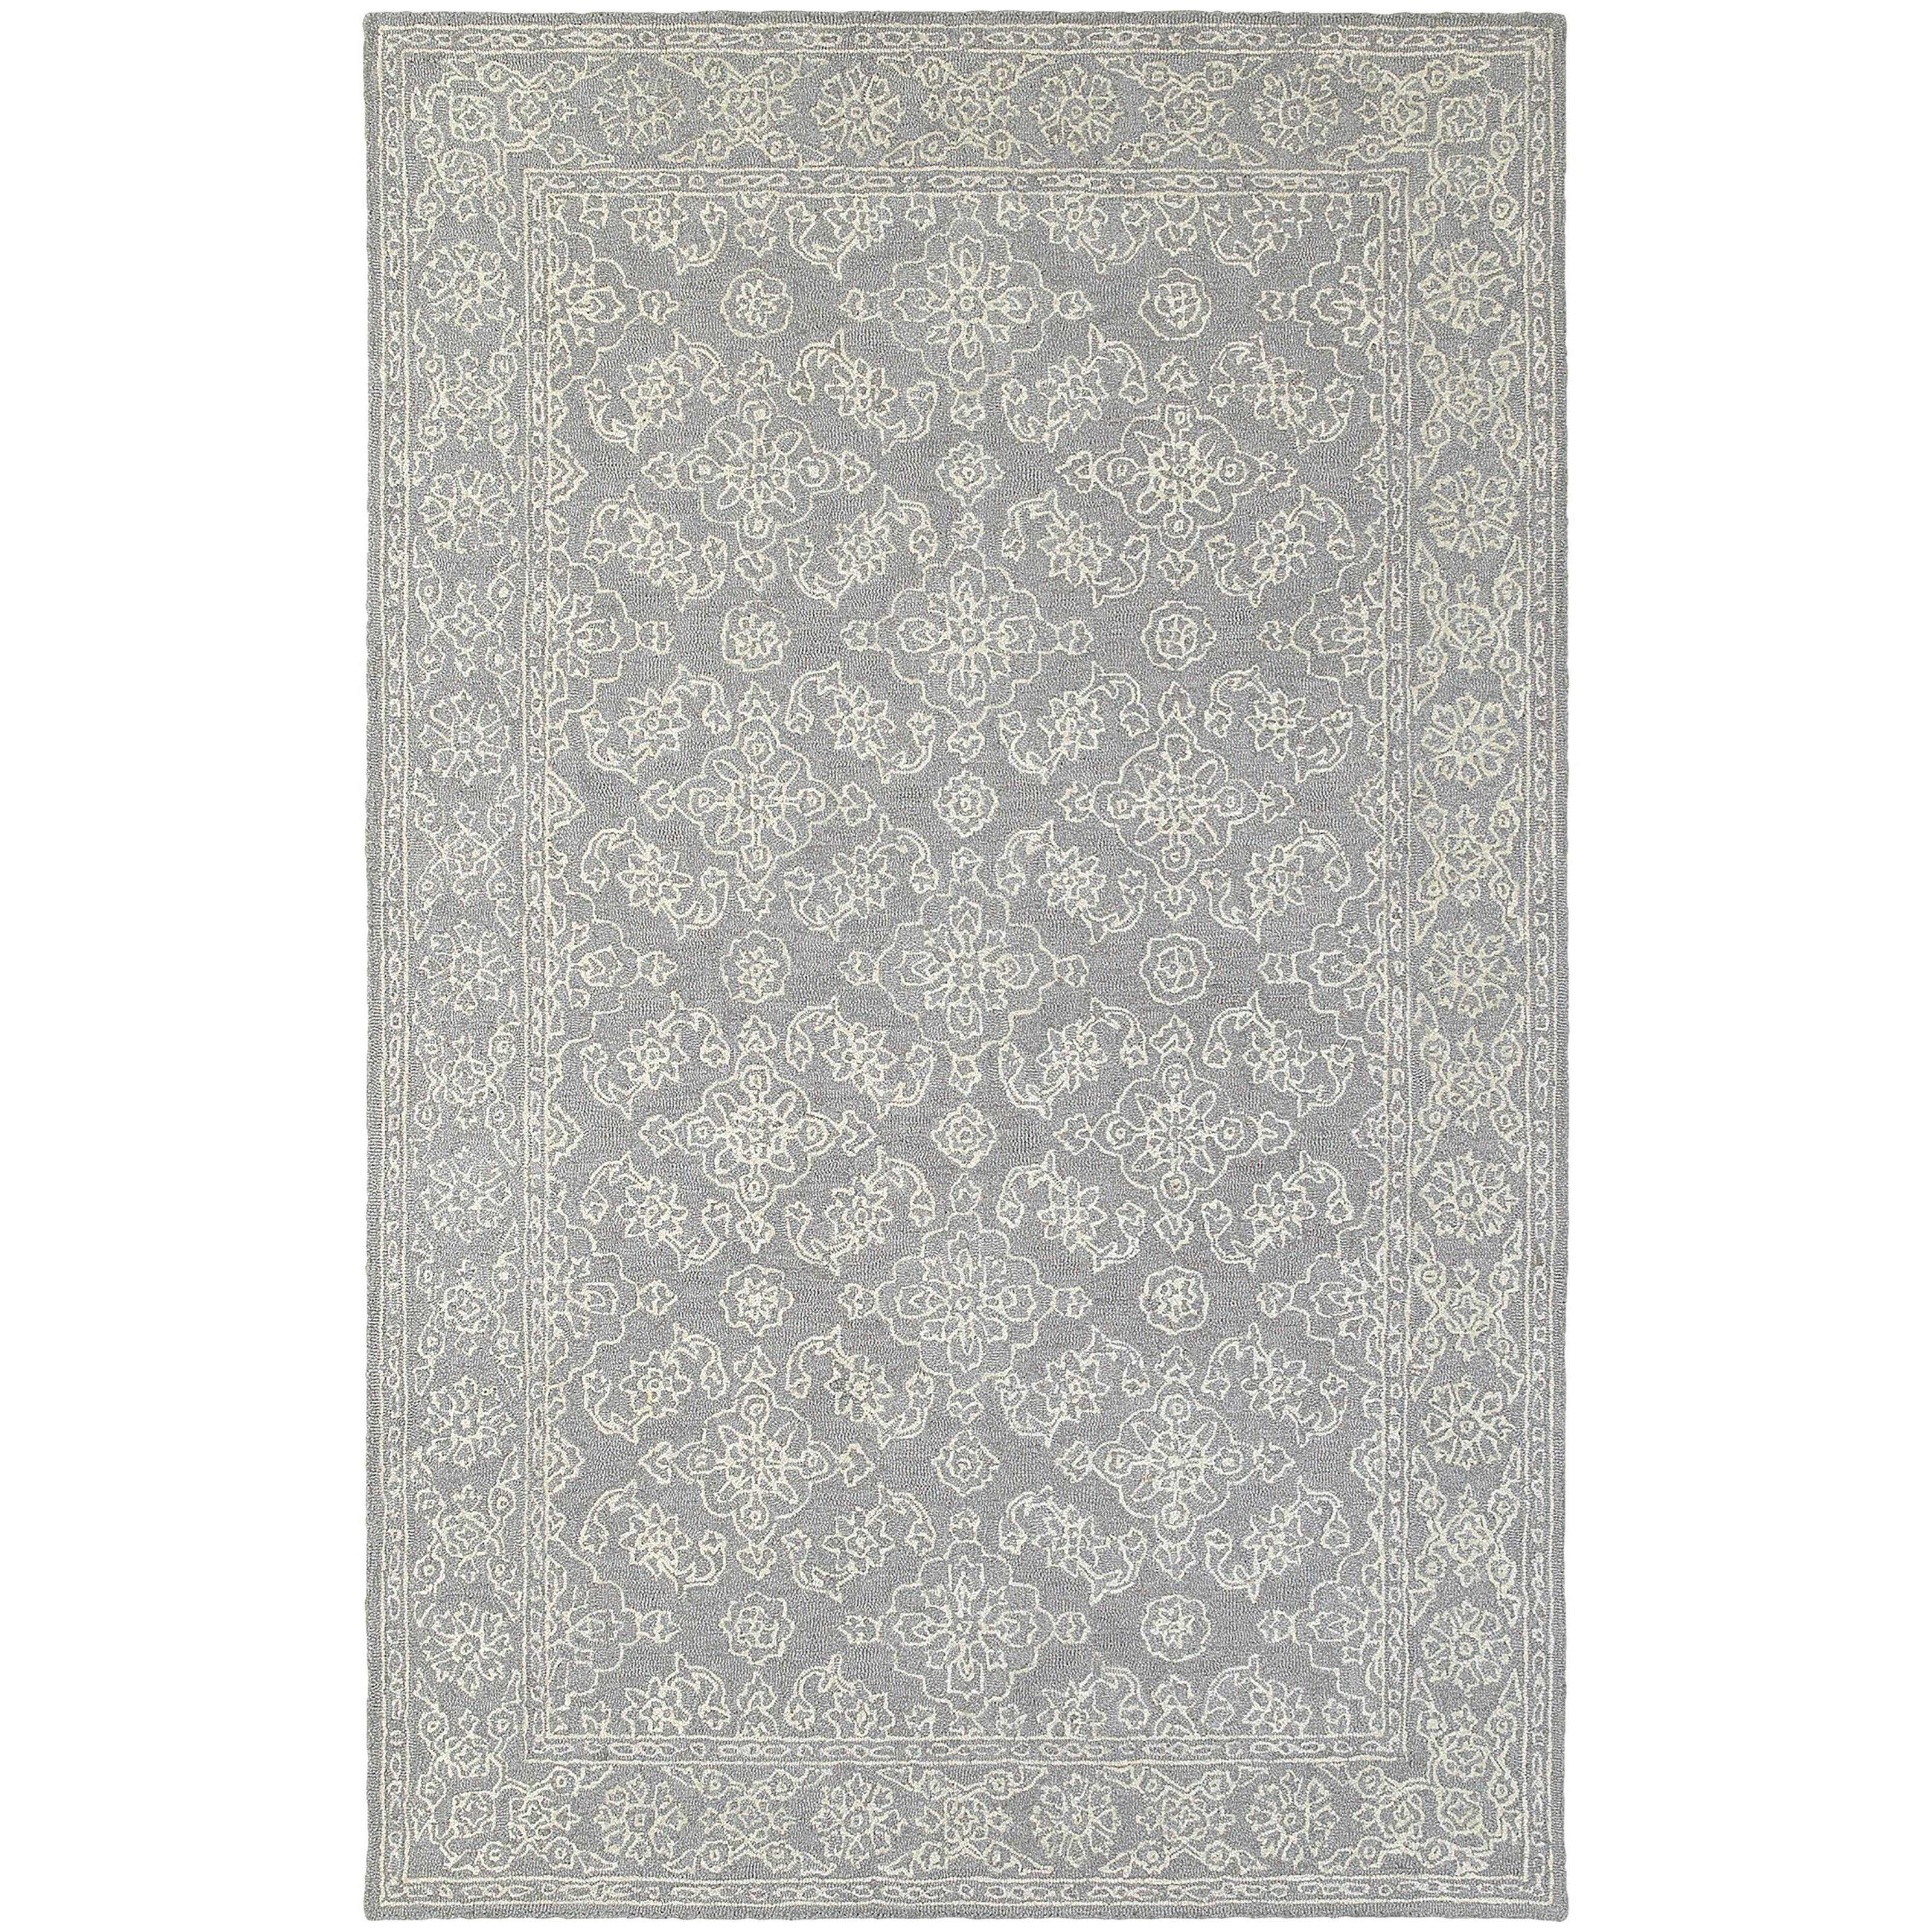 "Manor 3' 6"" X  5' 6"" Casual Grey/ Stone Rectangle  by Oriental Weavers at Godby Home Furnishings"